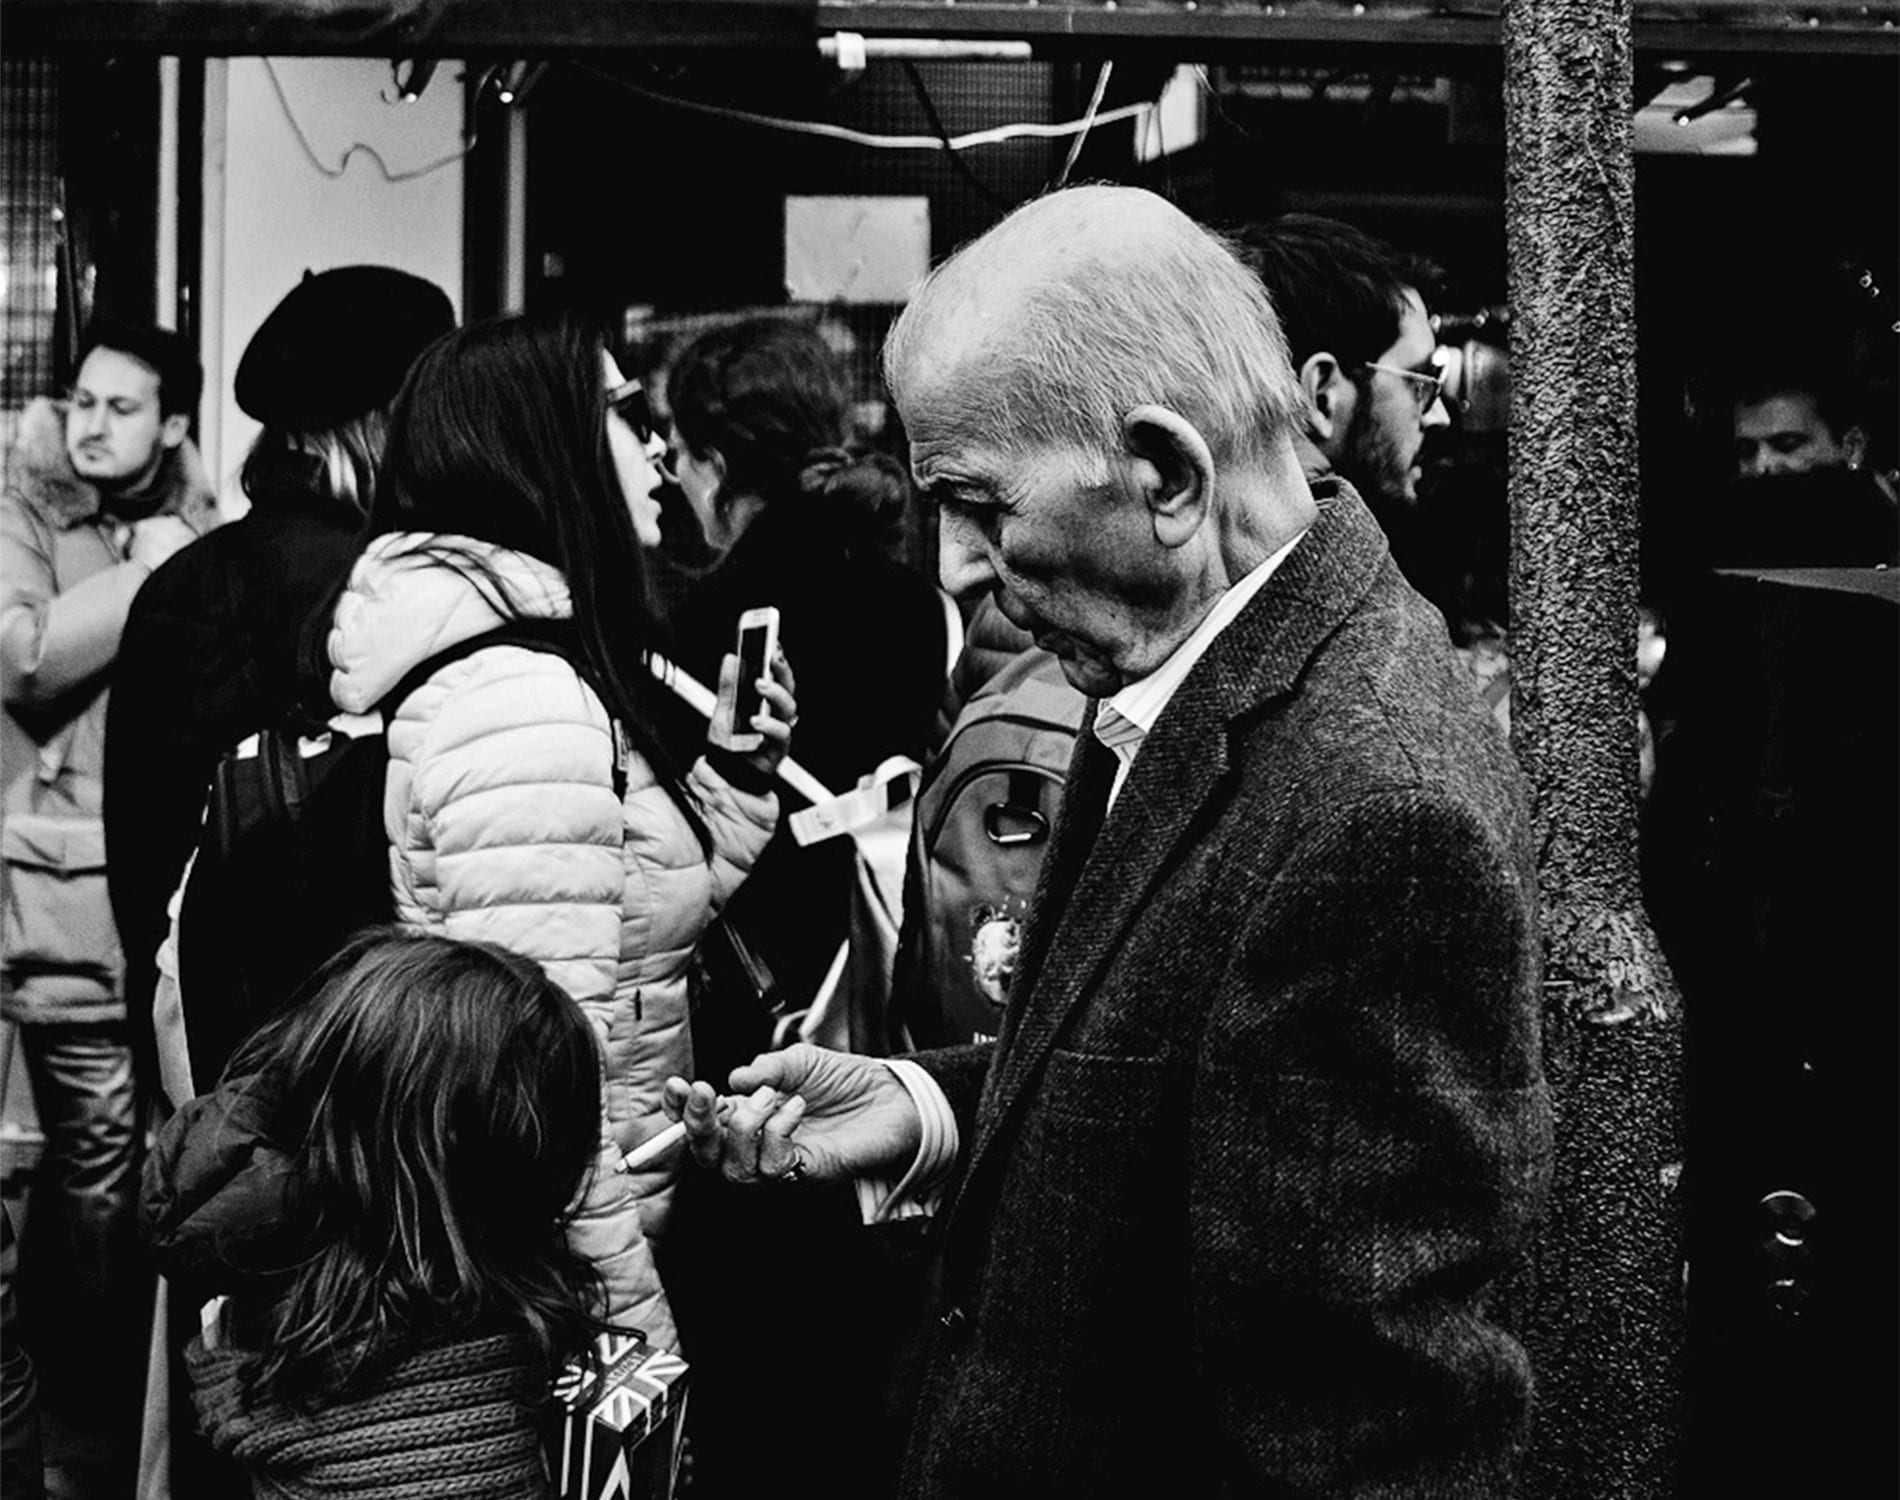 a man standing outside a shop looks down at the cigarette in his hand